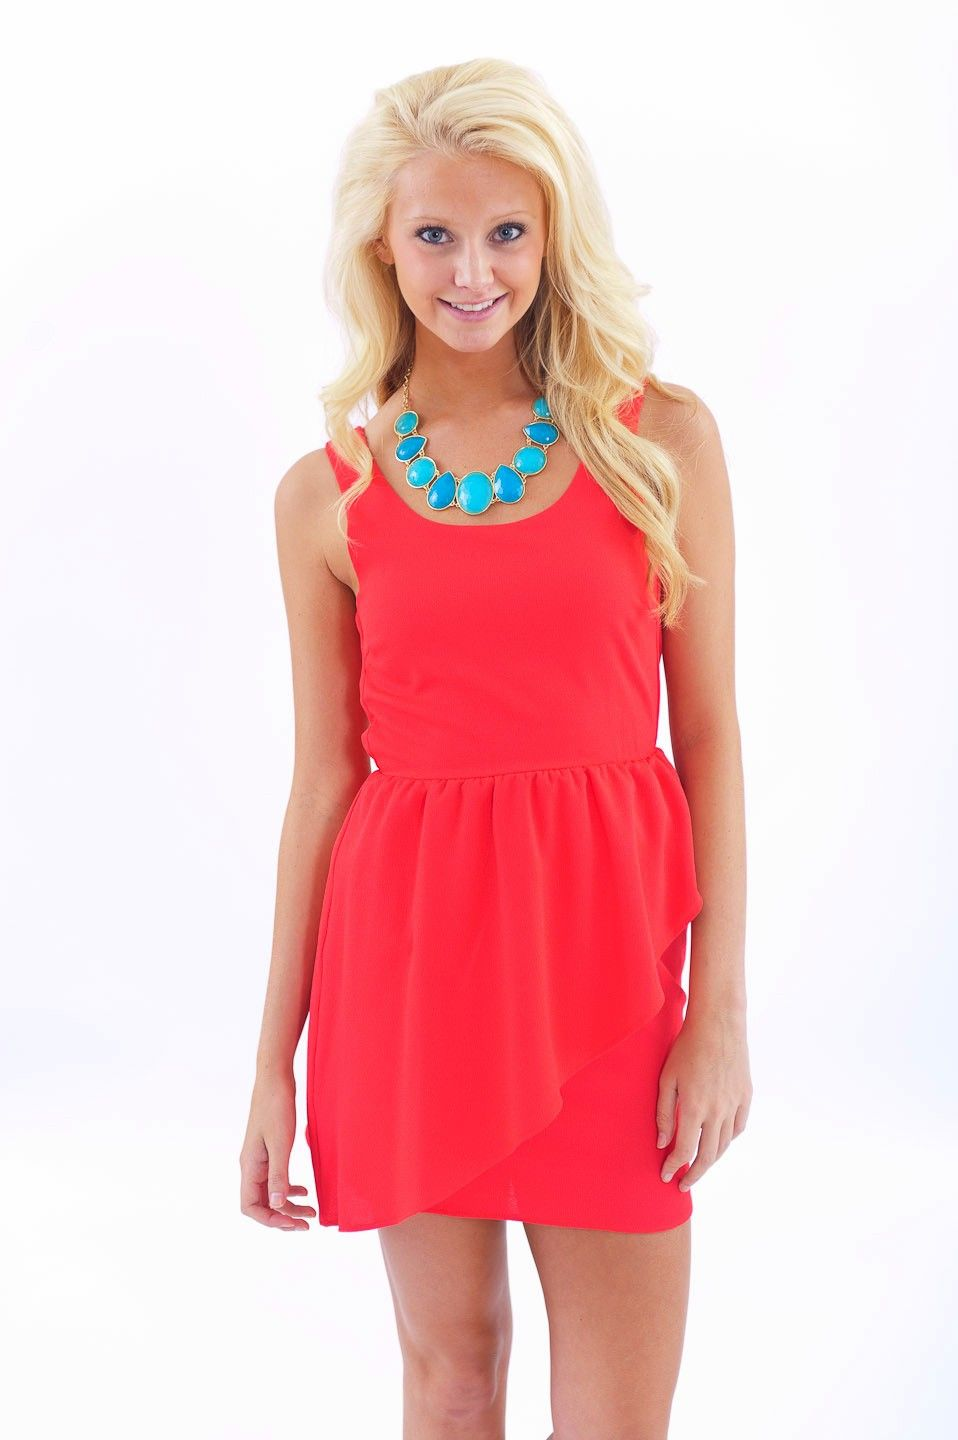 Everlymaterial twirl dressred dress red dresses my style